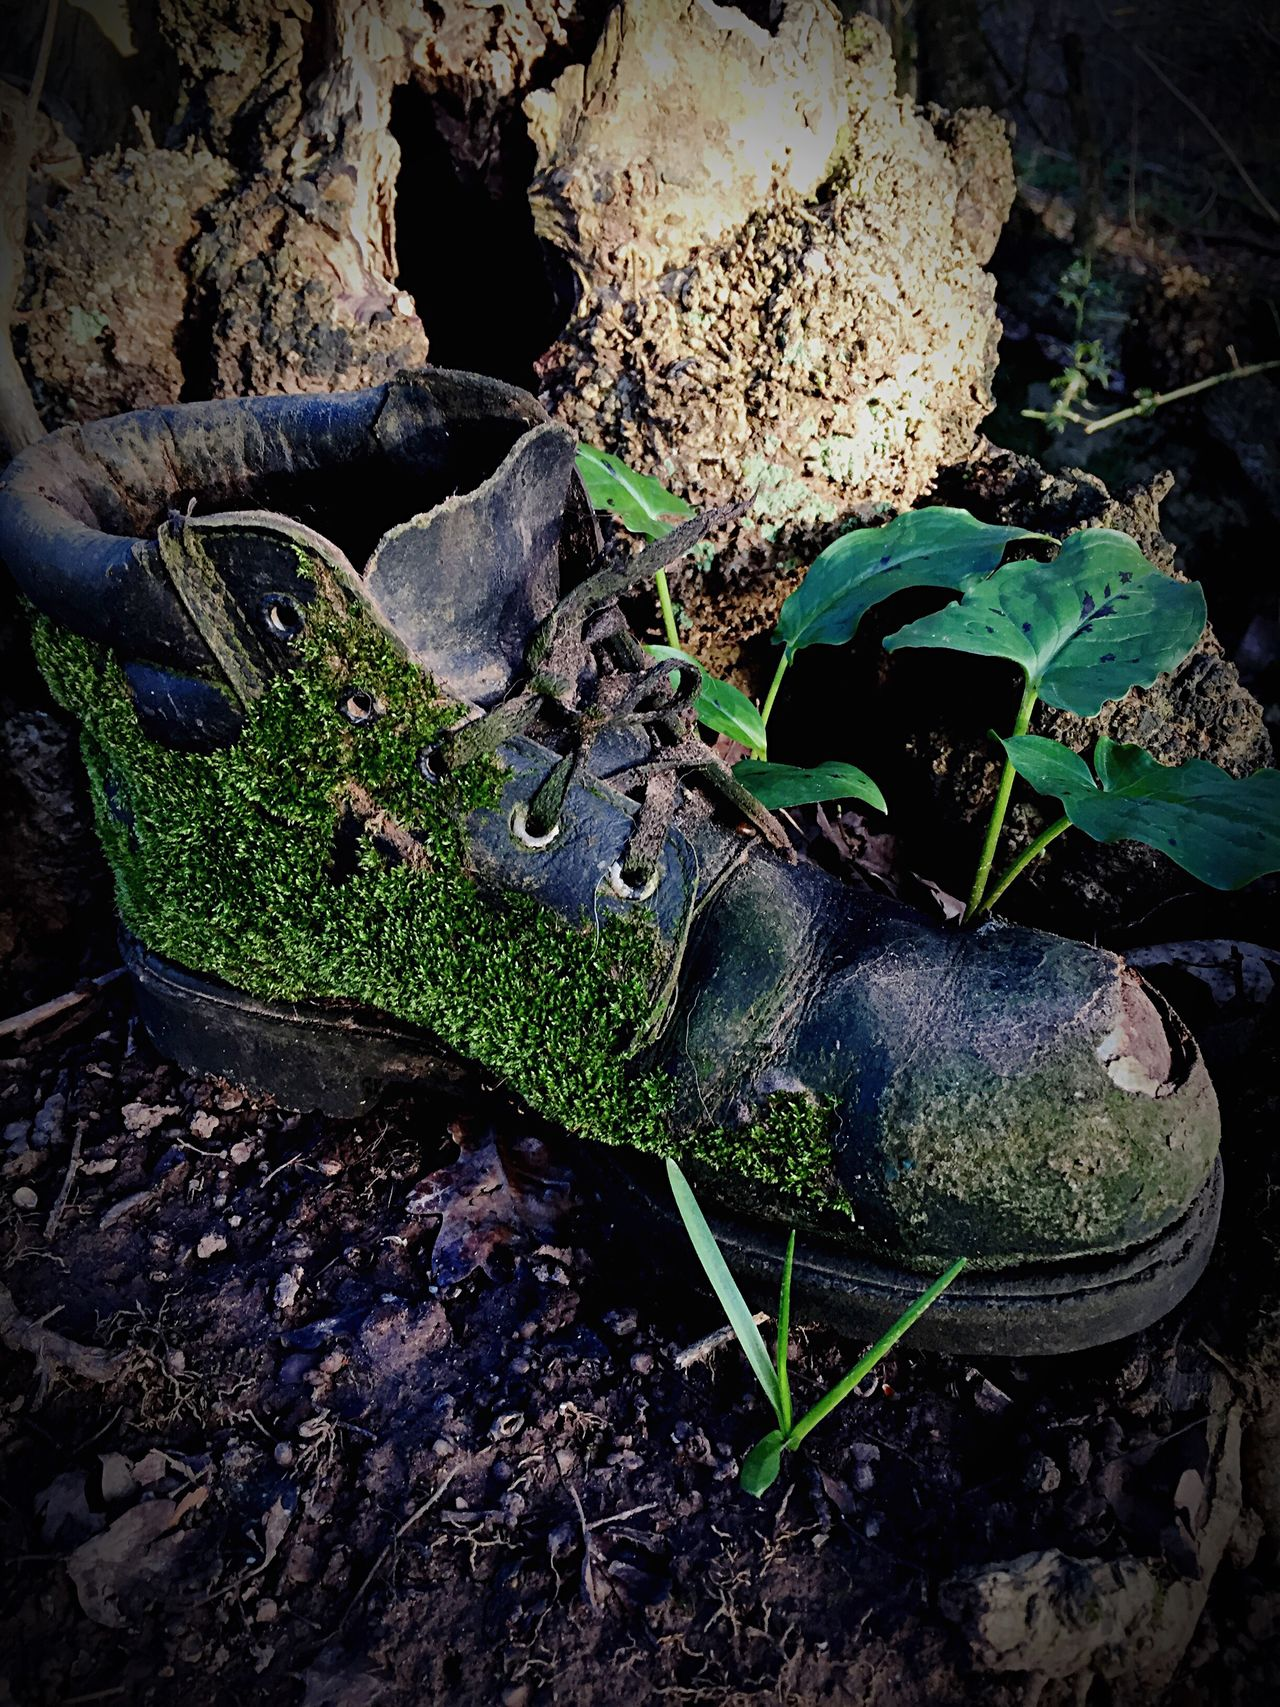 Old Old Boots Old Boot Boot Discarded Moss Discarded Stuff Rubbish IPhone Photography Iphone6 Iphonephotography IPhone IPhoneography Decay Abandoned Outdoors